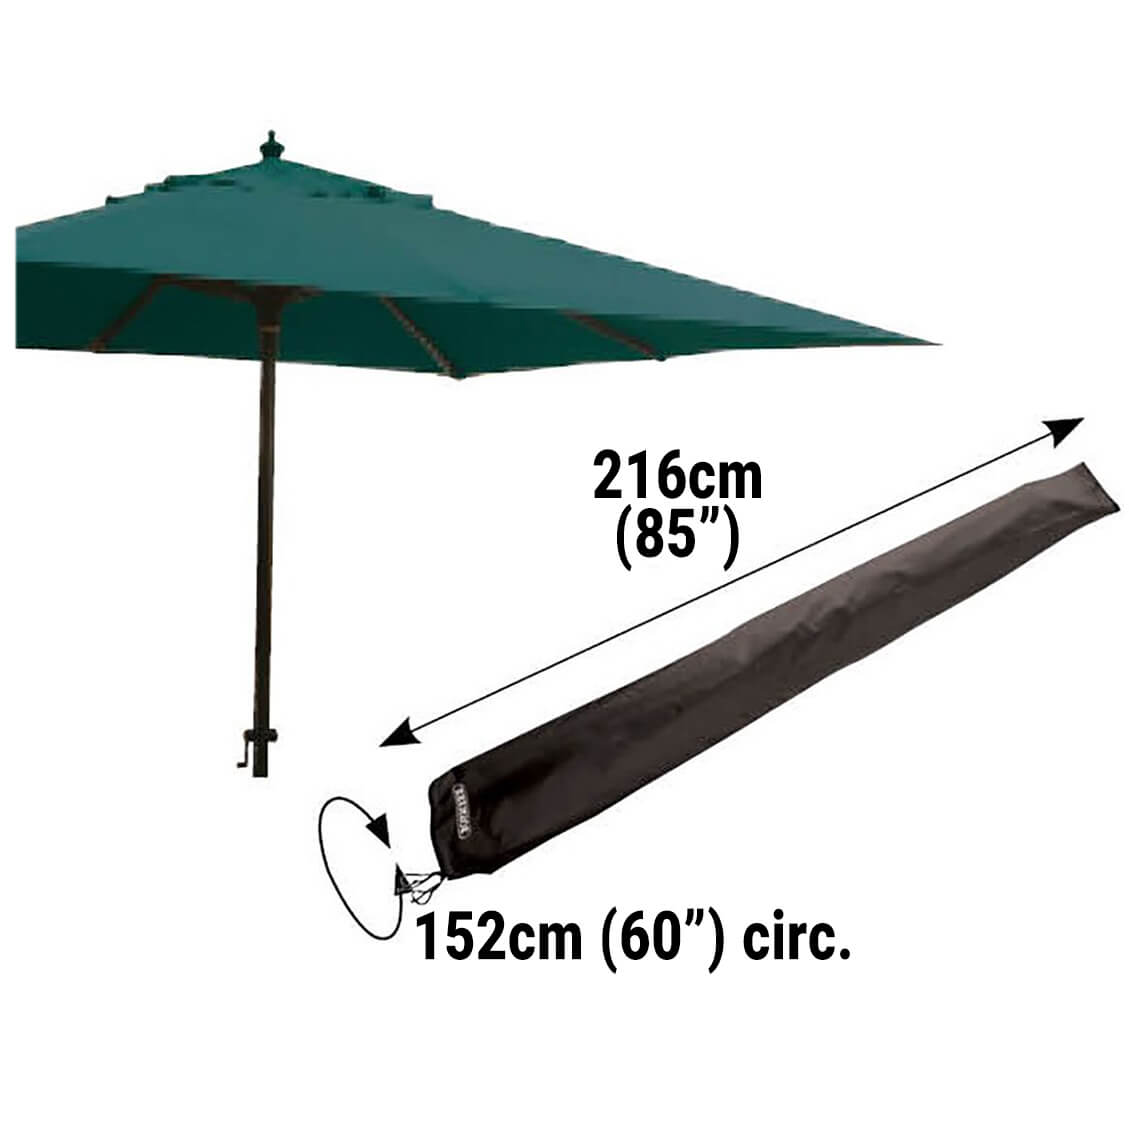 Small Image of Bosmere Protector 6000 Giant Parasol Cover With Zip - D596